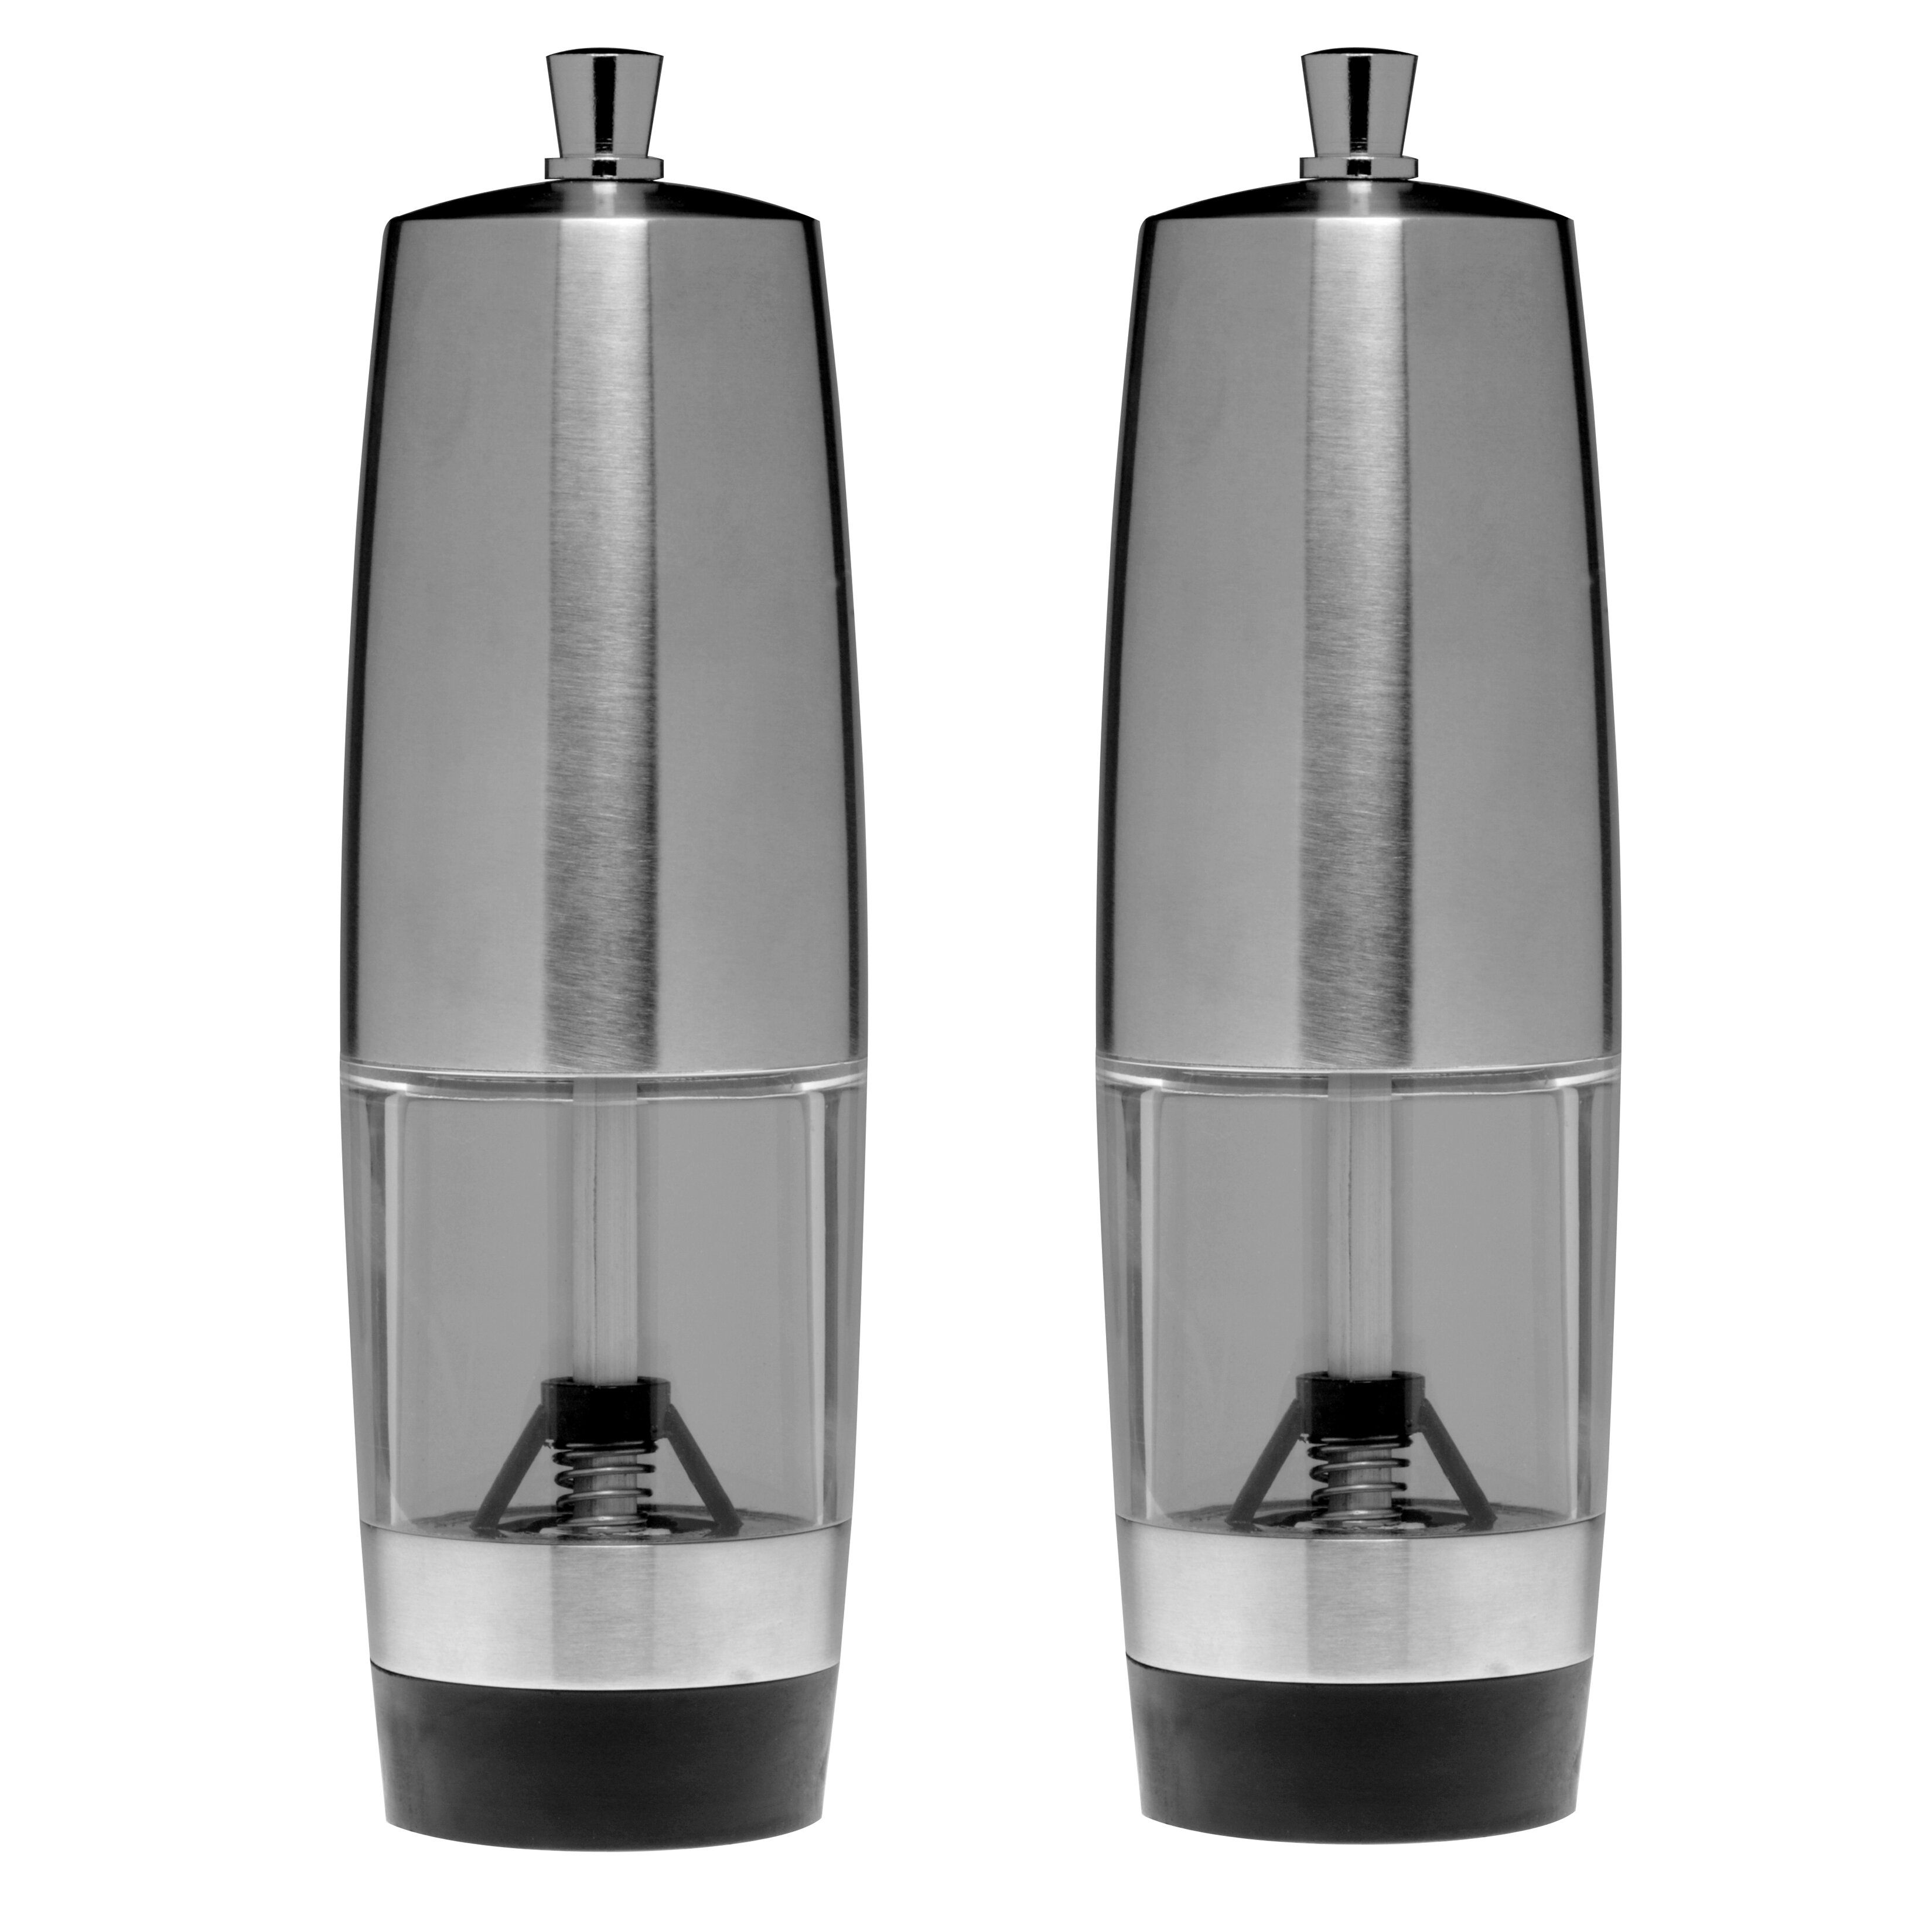 berghoff salt shaker and pepper mill set reviews wayfair. Black Bedroom Furniture Sets. Home Design Ideas